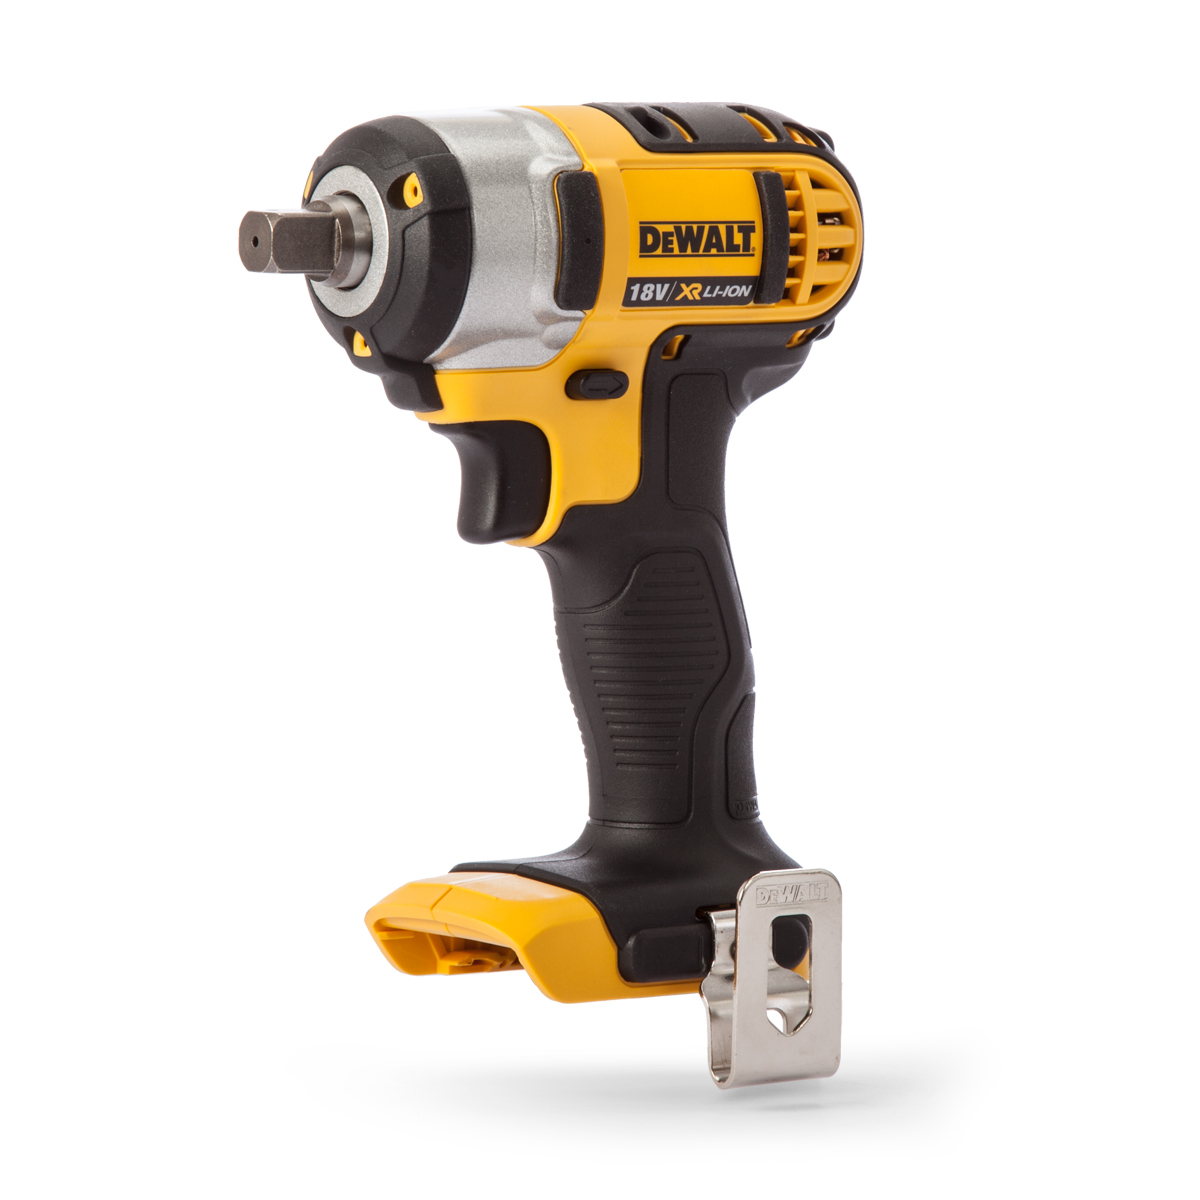 dewalt genuine dcf880 18v xr li ion impact wrench hardware depot. Black Bedroom Furniture Sets. Home Design Ideas